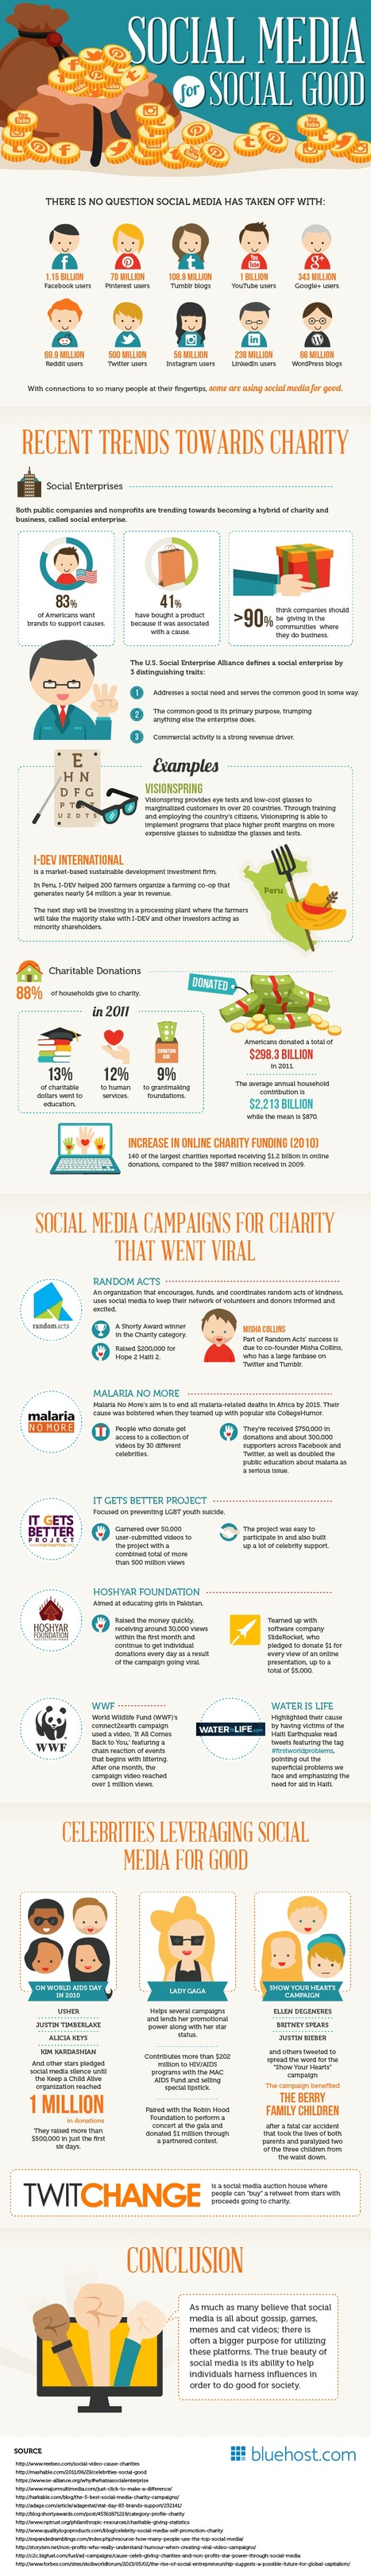 Social Media for Social Good | News in Social Networks | Scoop.it